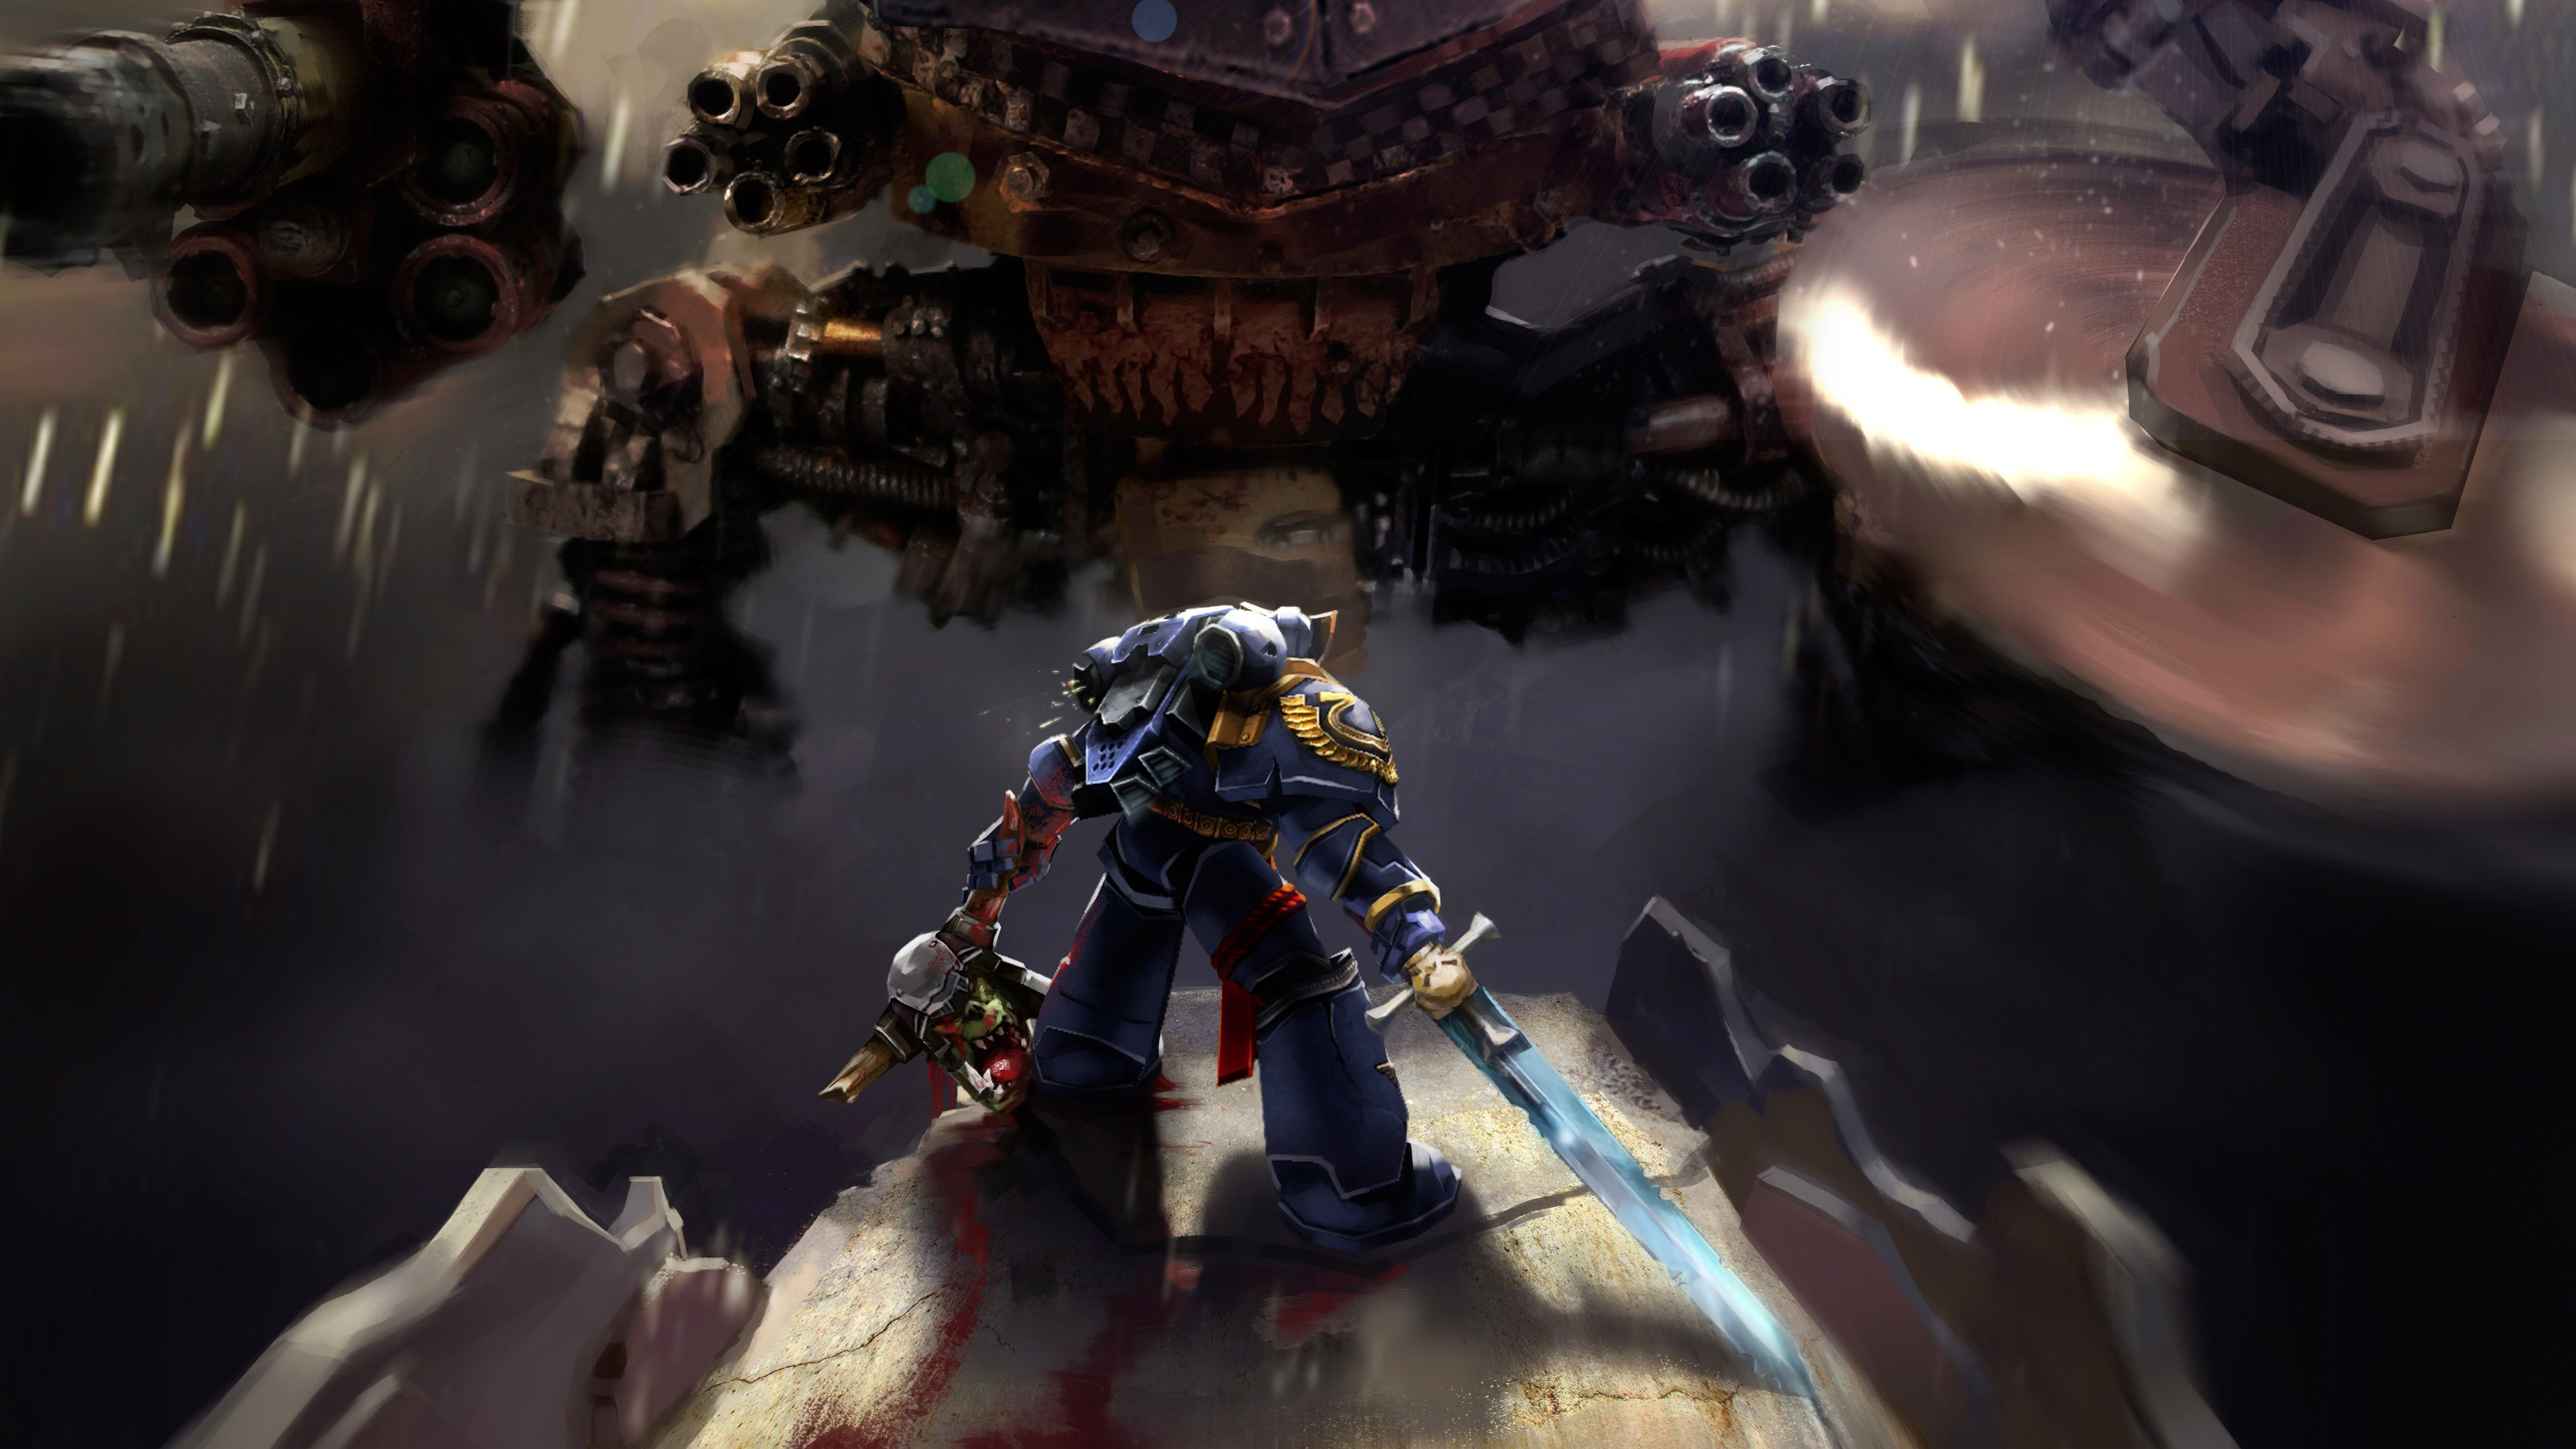 warhammer 40k space marine ultramarines, hd games, 4k wallpapers